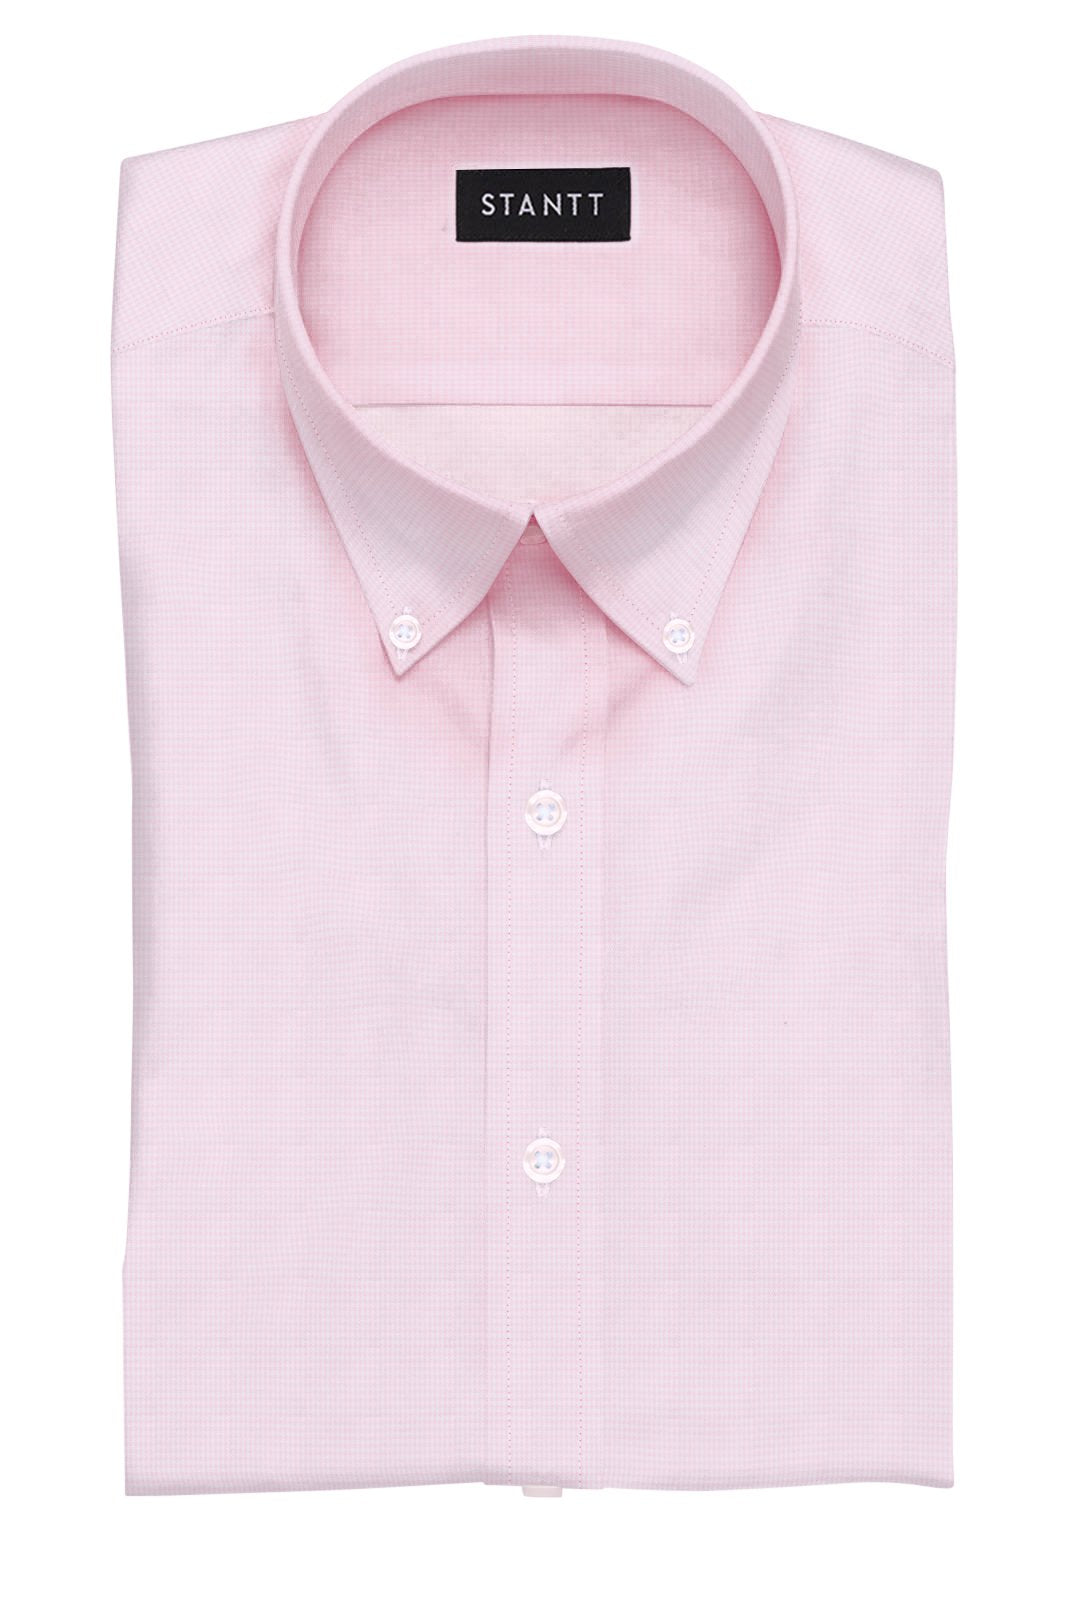 Pink Houndstooth: Button-Down Collar, Barrel Cuff